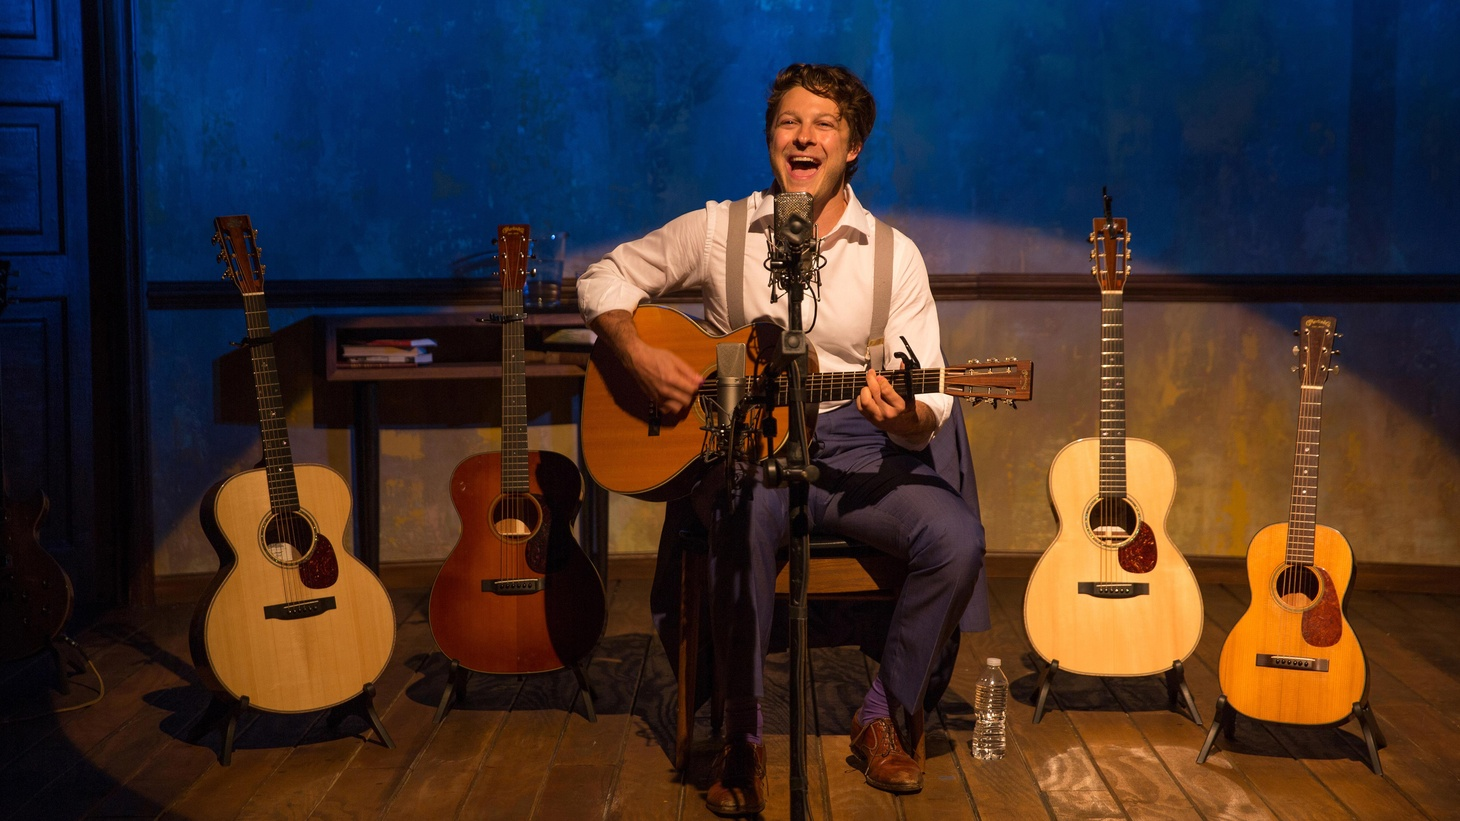 The Lion is a really tight solo show with remarkable guitar playing. It's a production that's filled with technique and . . . that might be part of the problem.